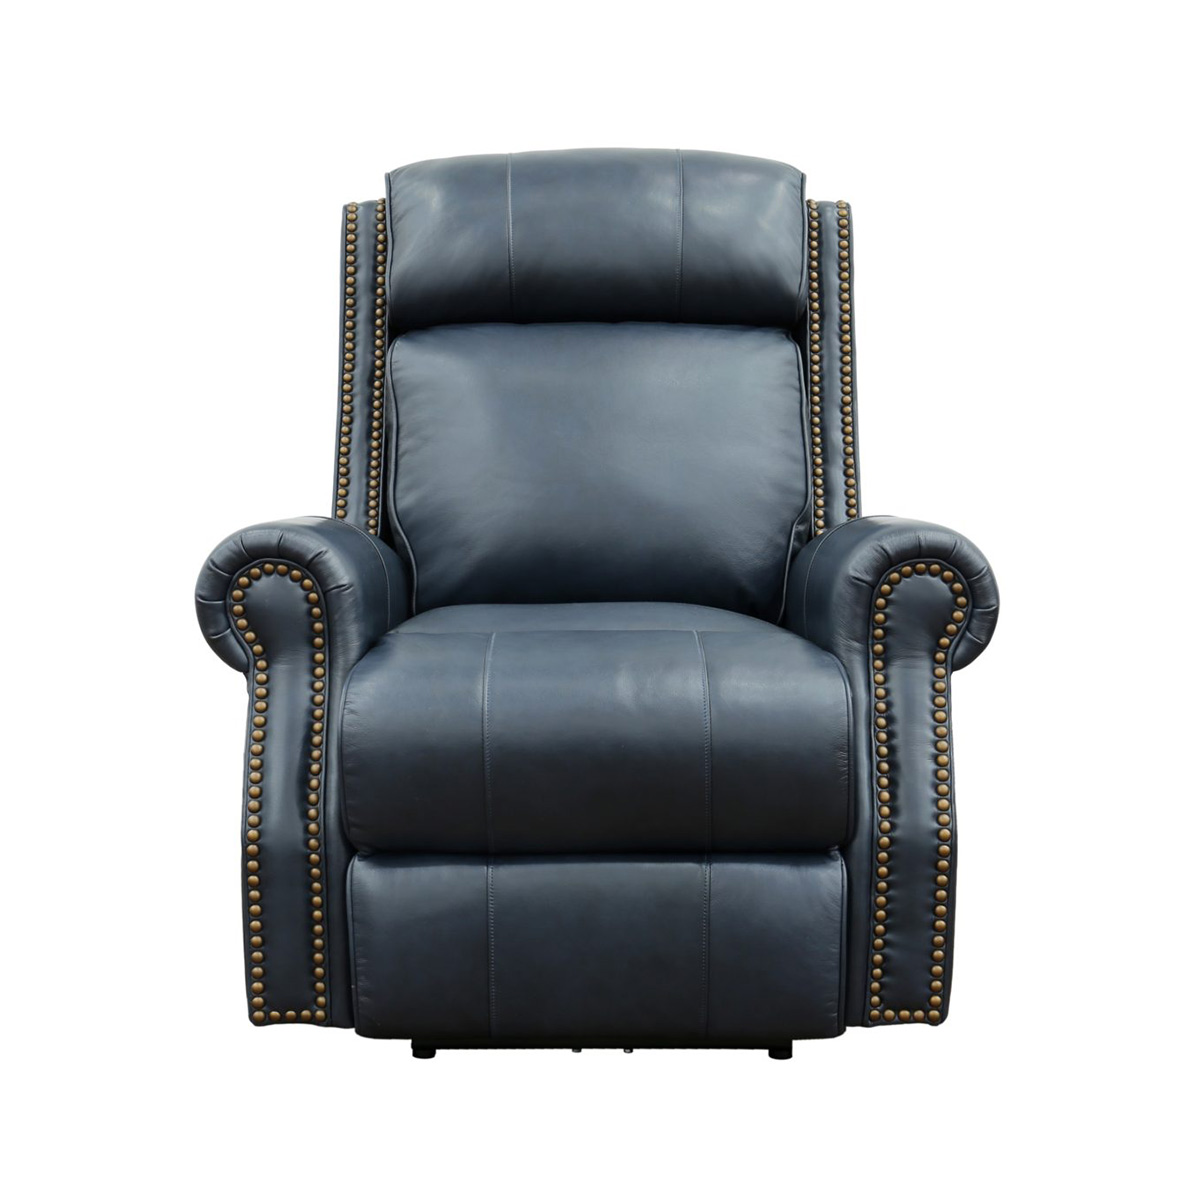 Barcalounger Blair Big and Tall Power Recliner Chair with Power Head Rest - Shoreham Blue/all leather